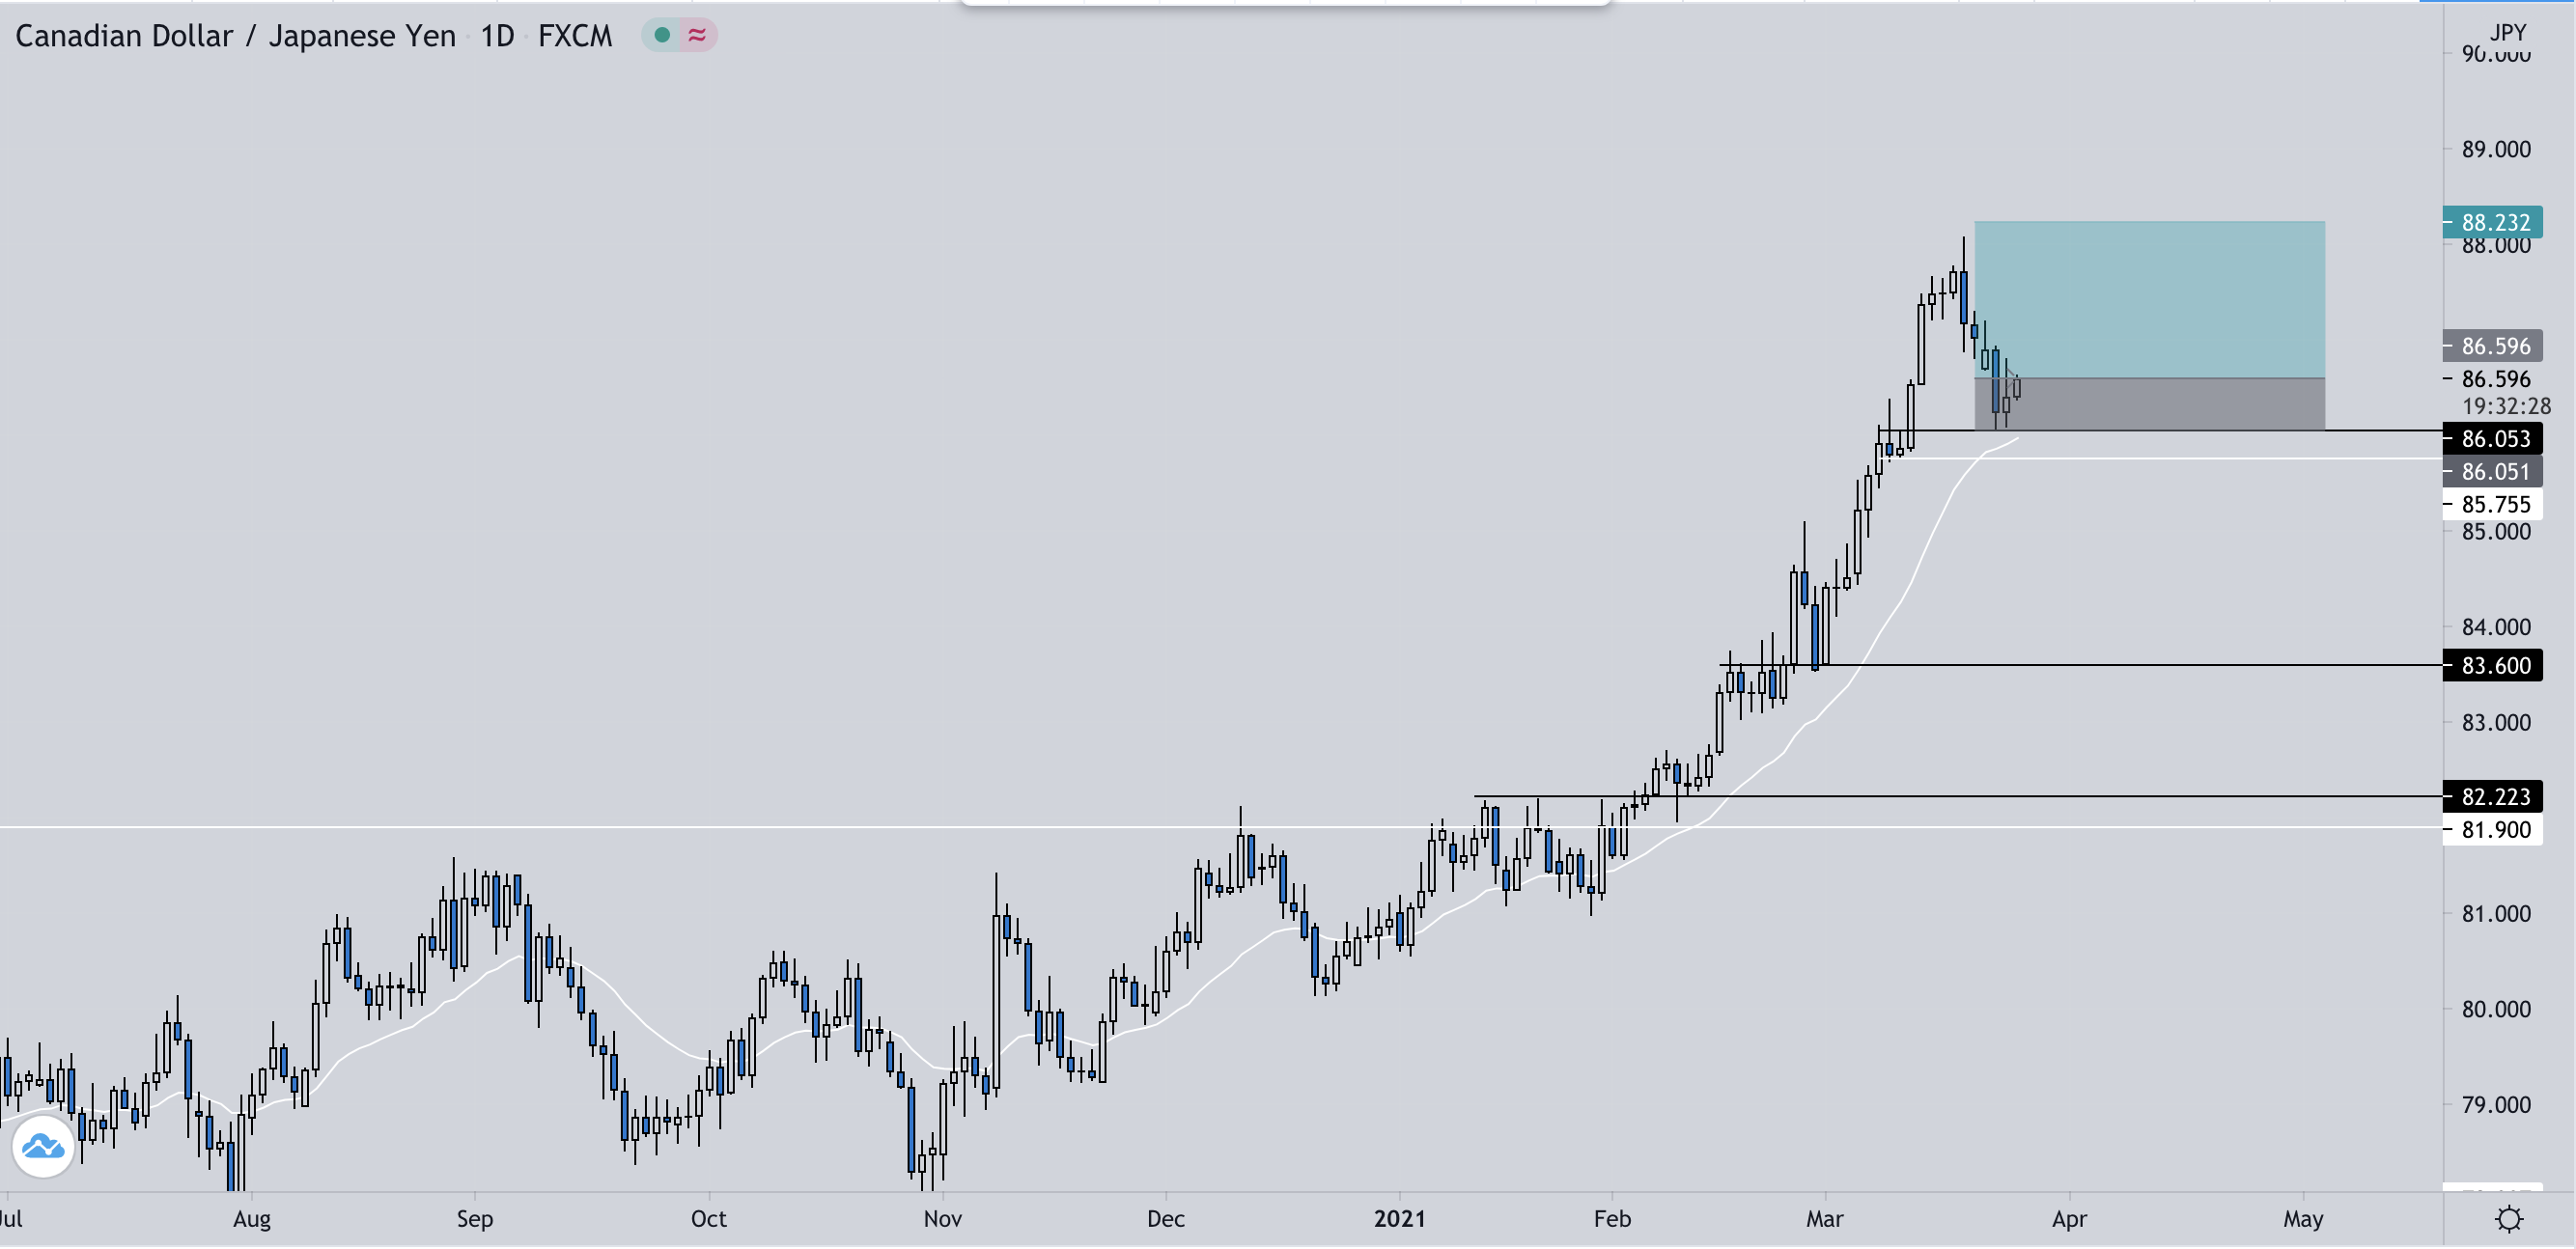 CAD/JPY D1 Daily trend continuation